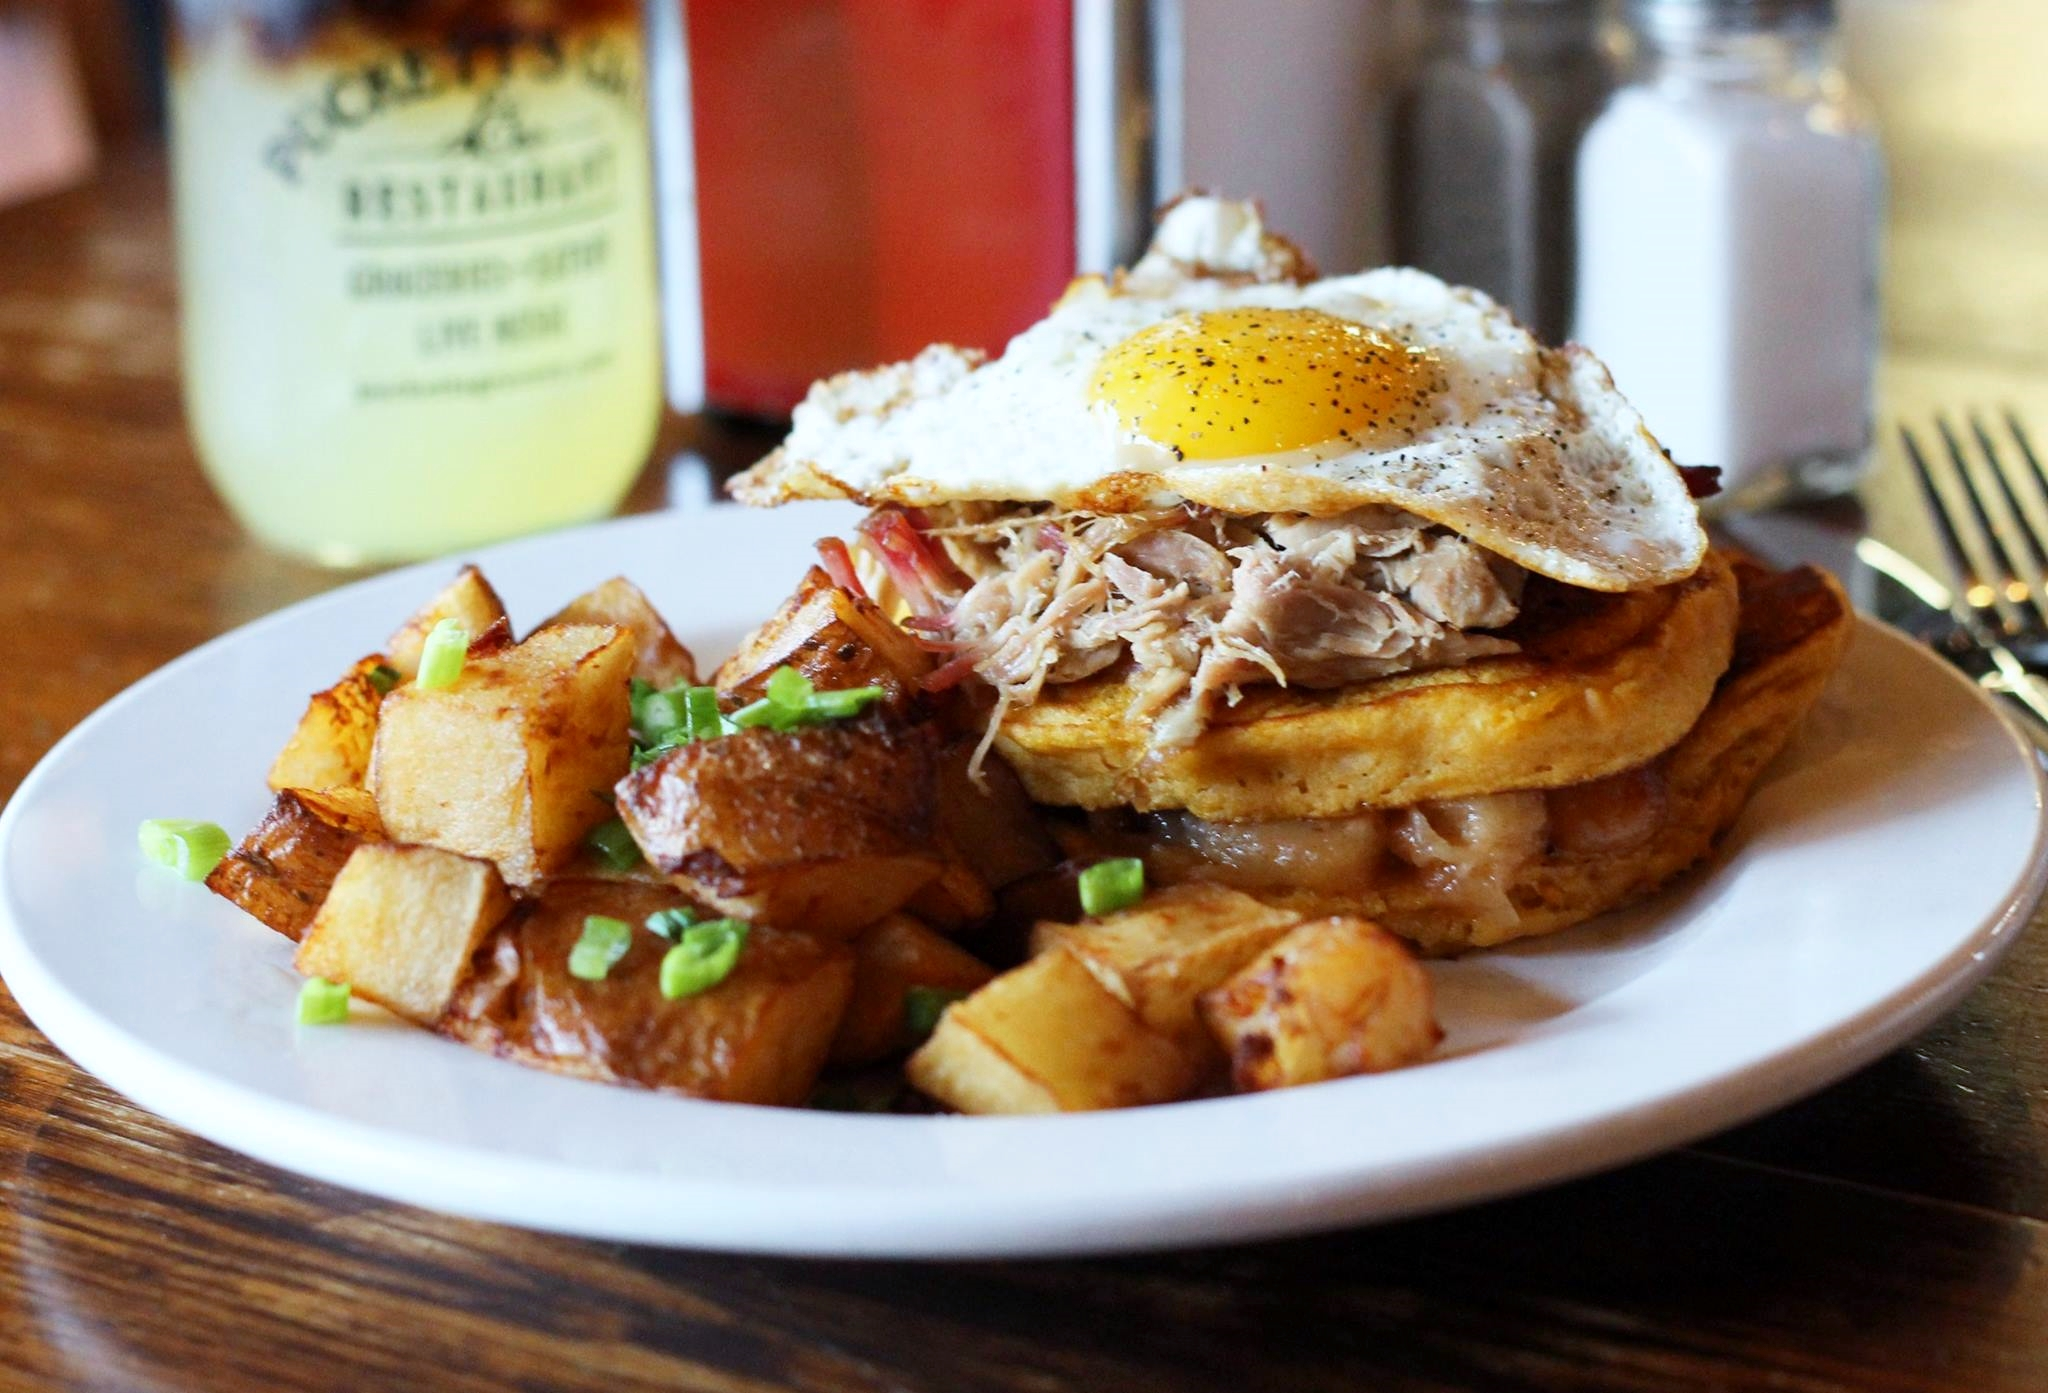 The incredible Southern Stack: slow-smoked pulled pork over sweet potato pancakes and fried apples, topped with a fried egg